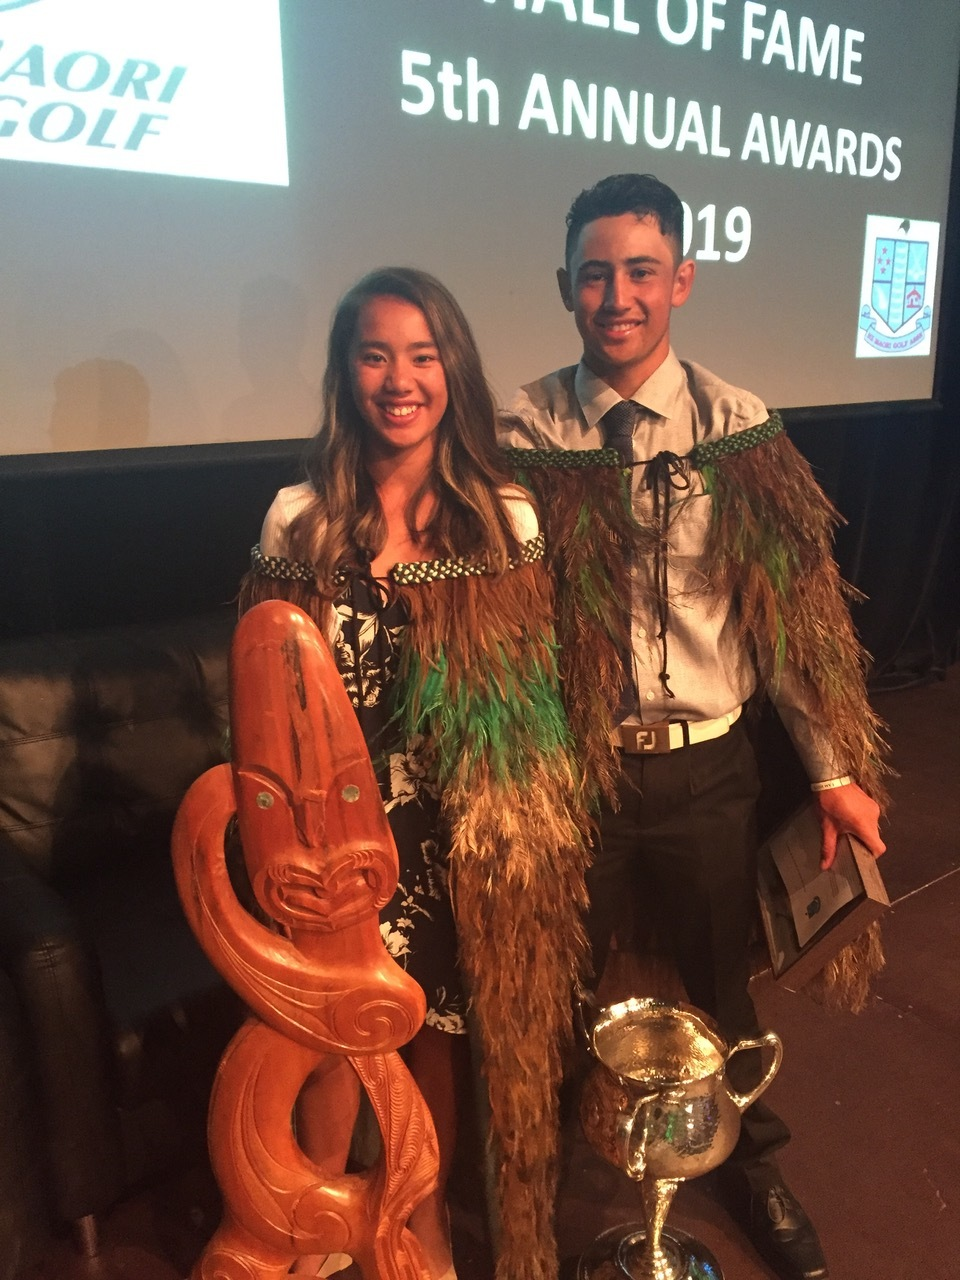 Mia Scrimgeour and James Tauariki, the women's and men's winners of the New Zealand Maori golf tournament in Taupo last month.